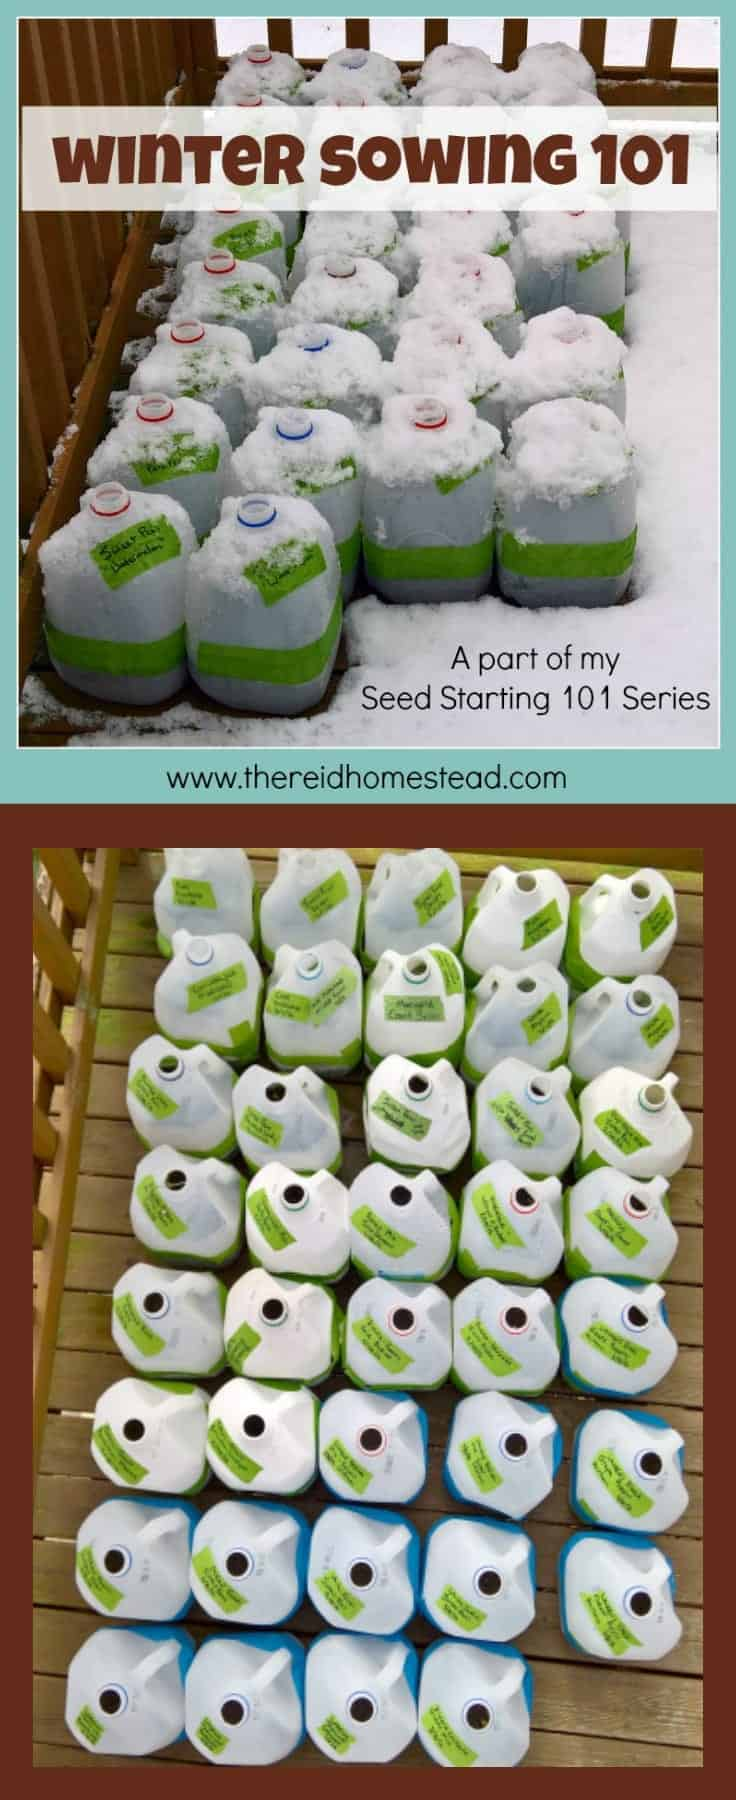 Winter Sowing tutorial Sow your seeds in winter using milk jugs as min greenhouses Seed Starting 101 Series The Reid Homestead